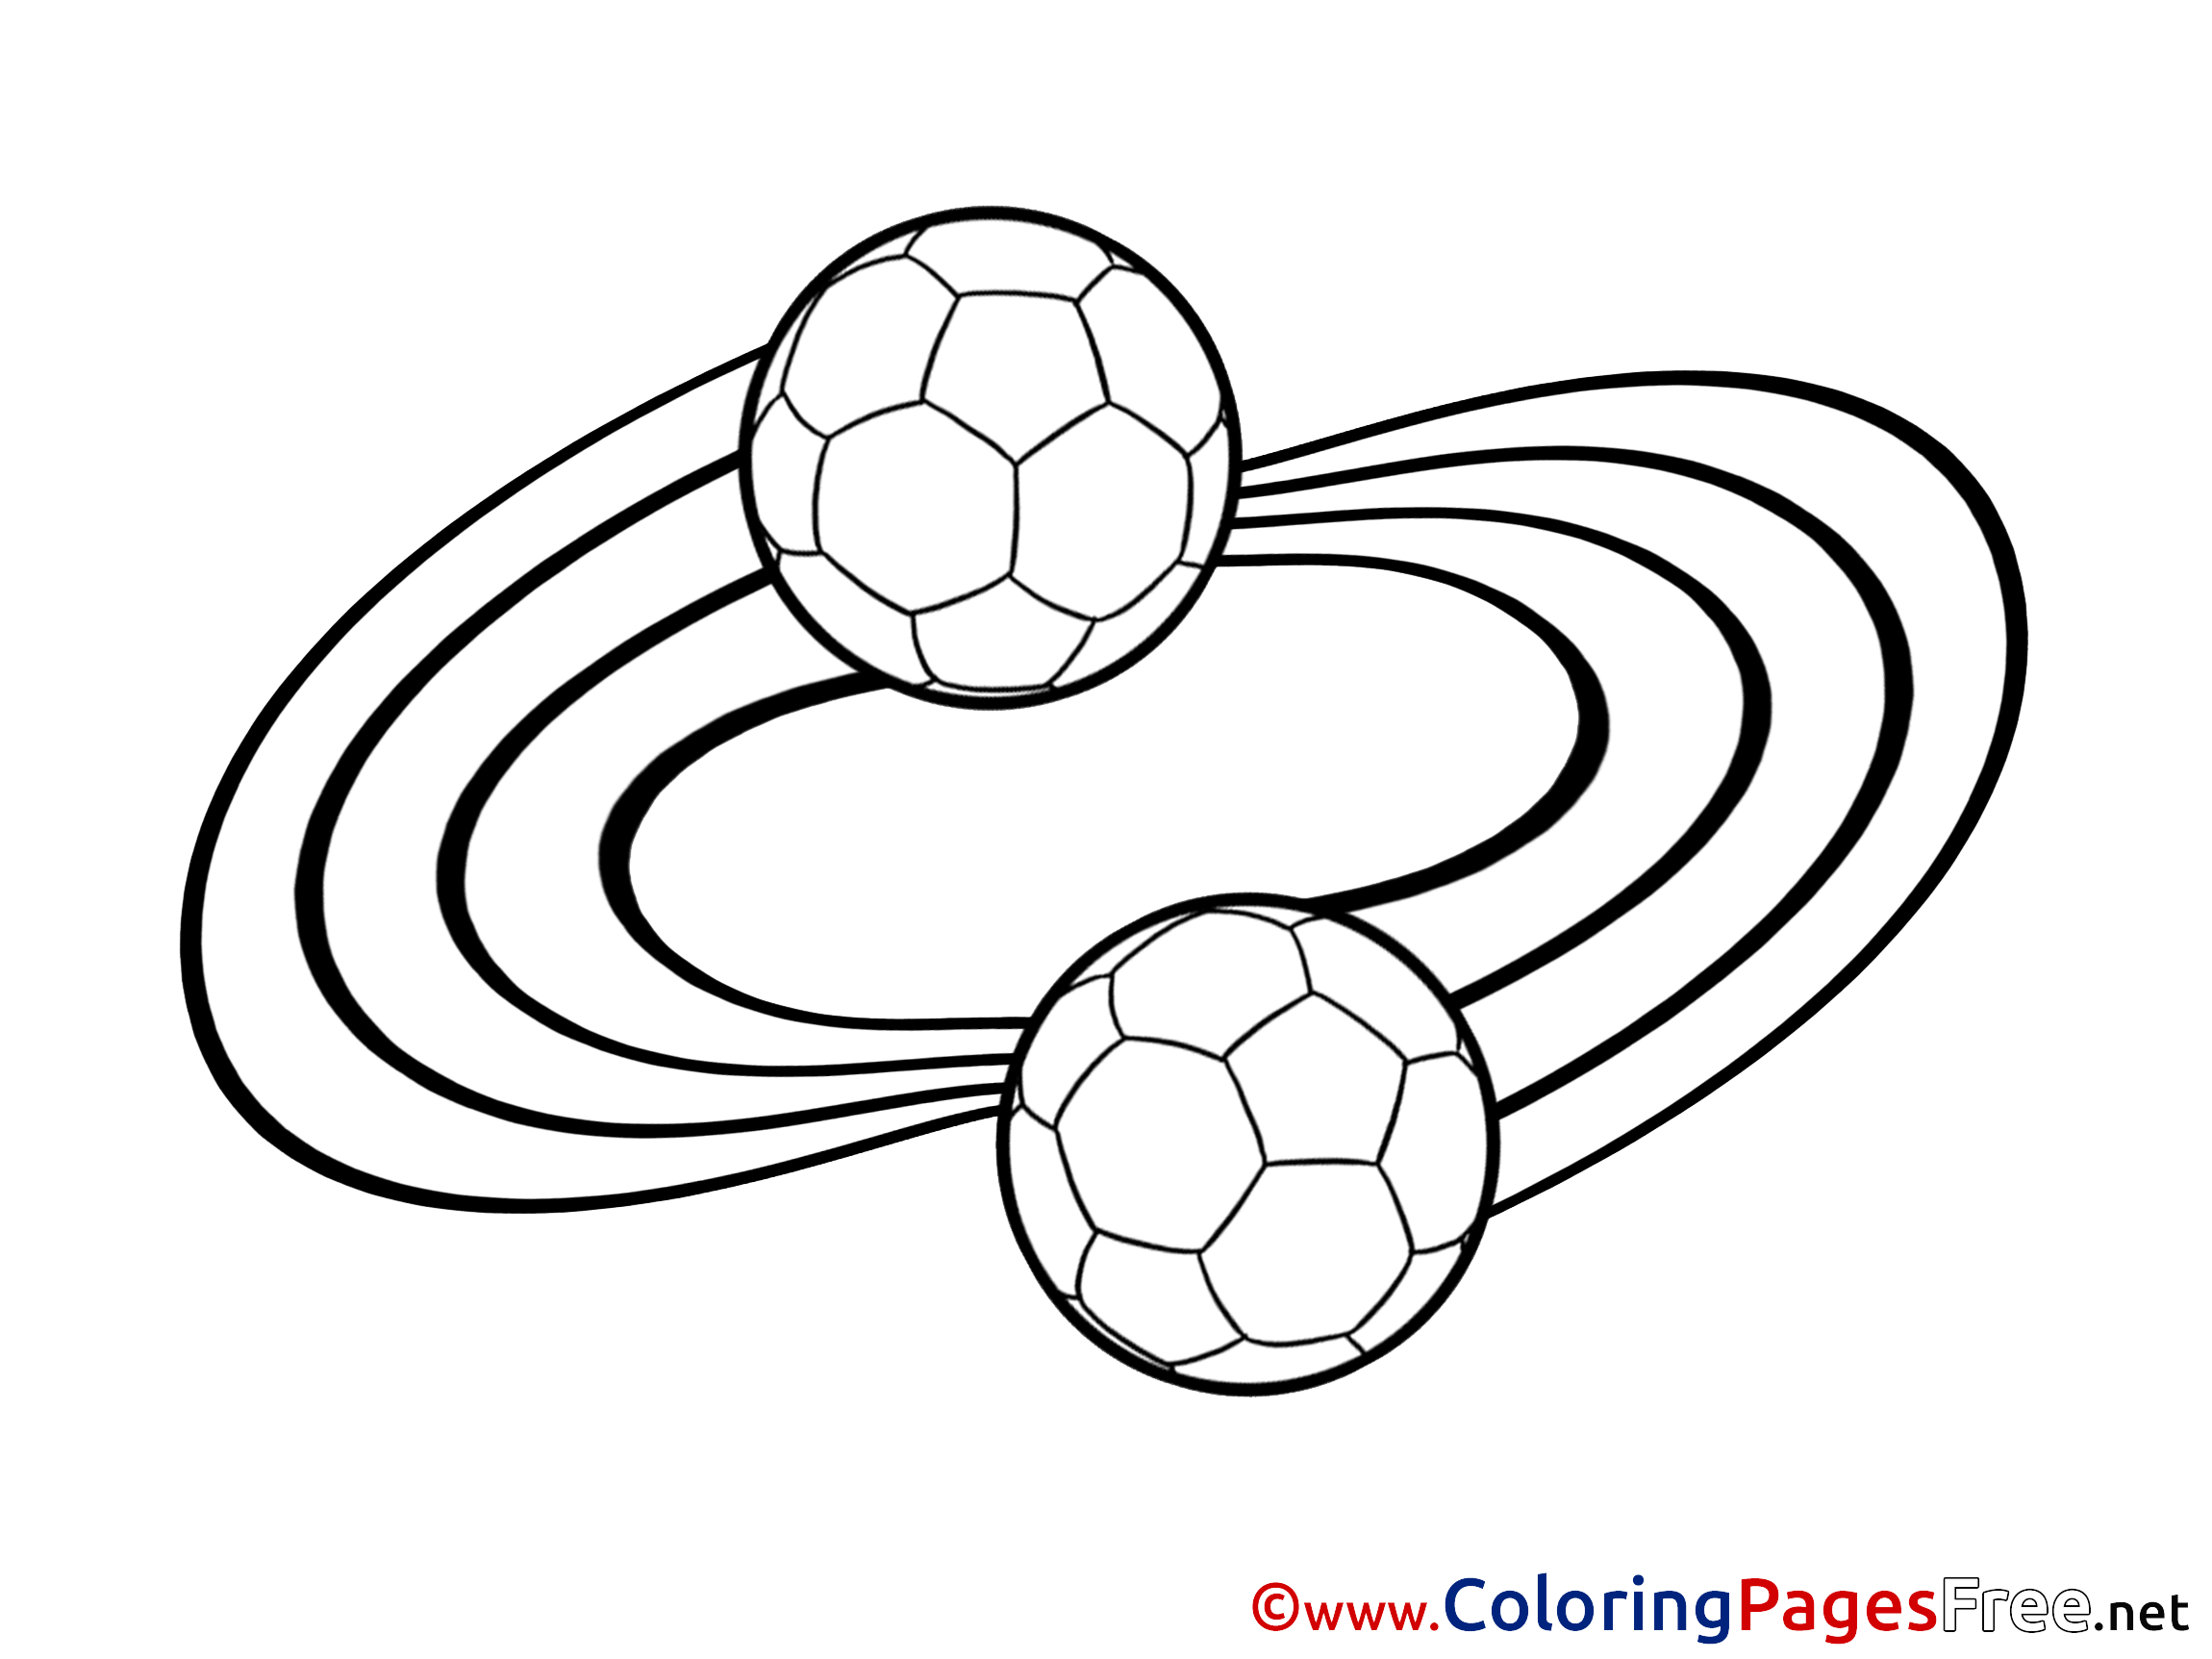 Football Balls printable Coloring Pages Soccer